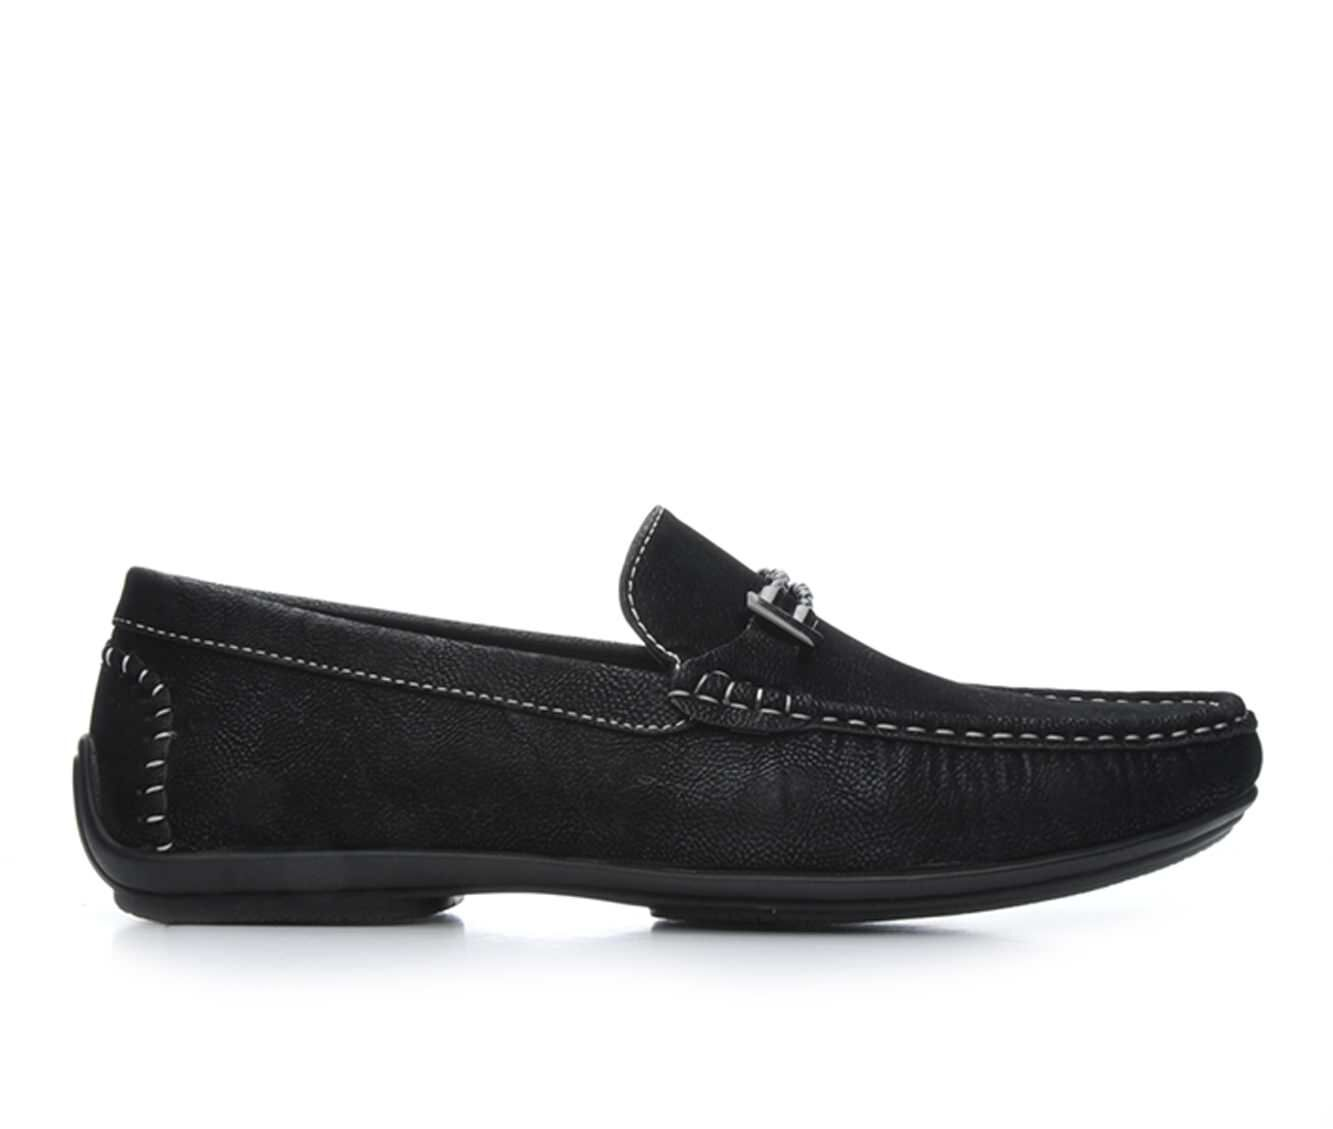 Men's Stacy Adams Percy Loafers Black